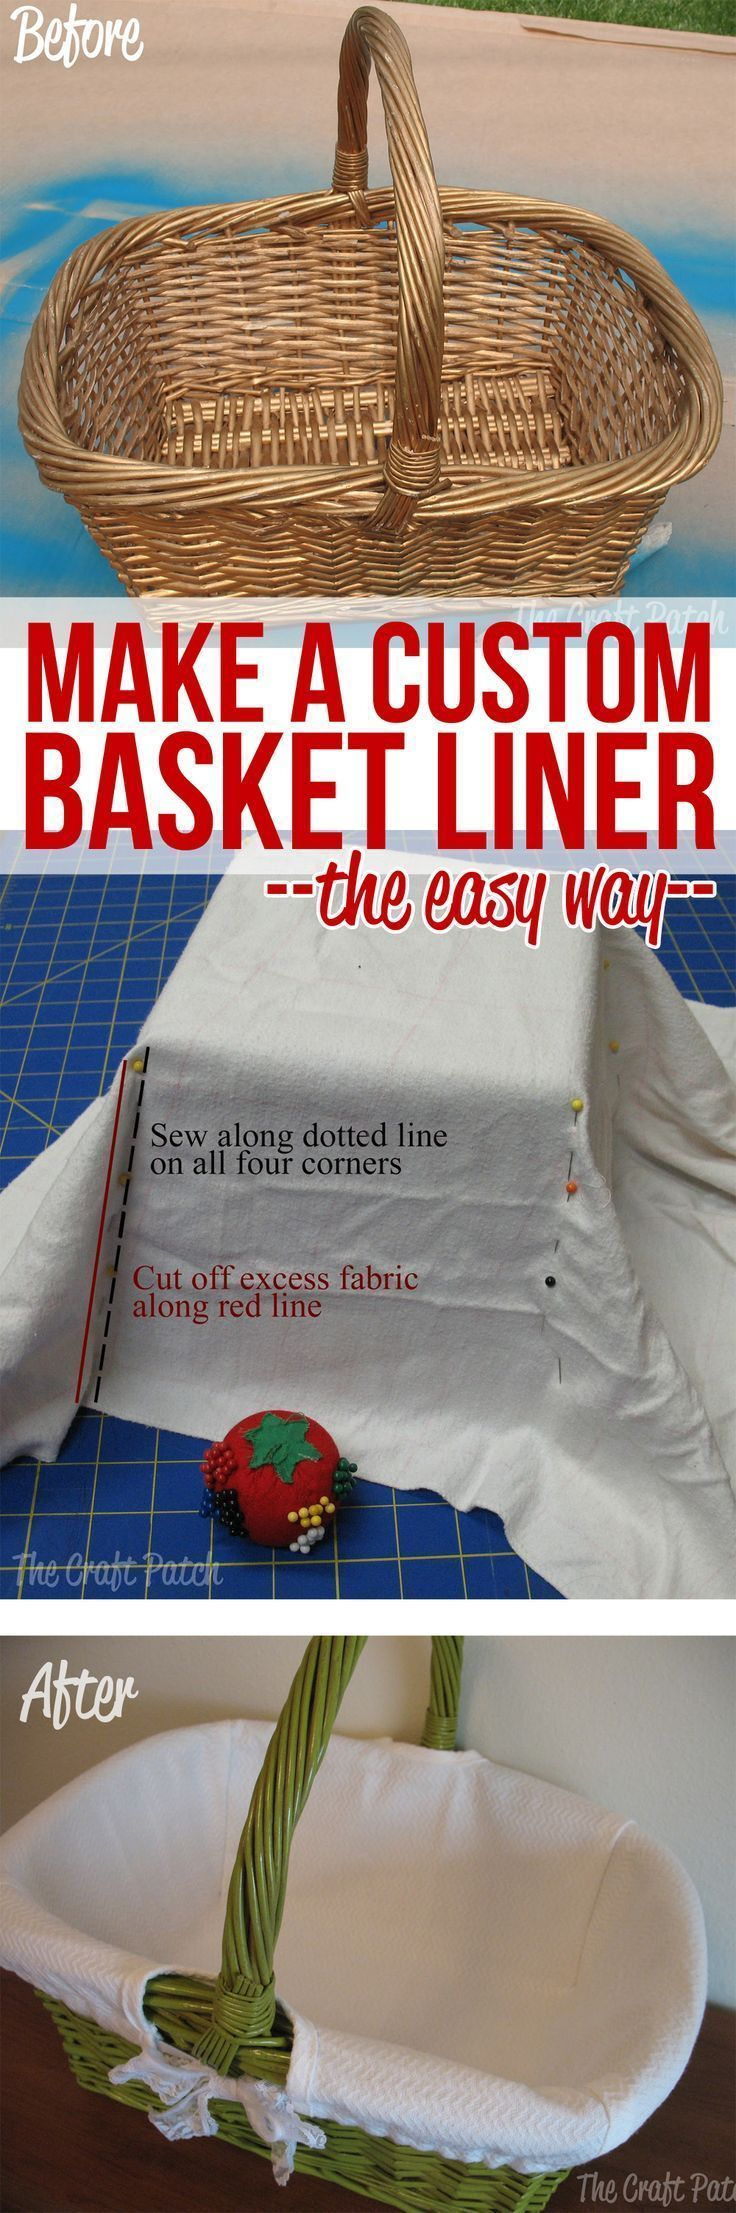 The easy way to sew a fabric basket liner to fit any basket.This is an awesome sewing technique!